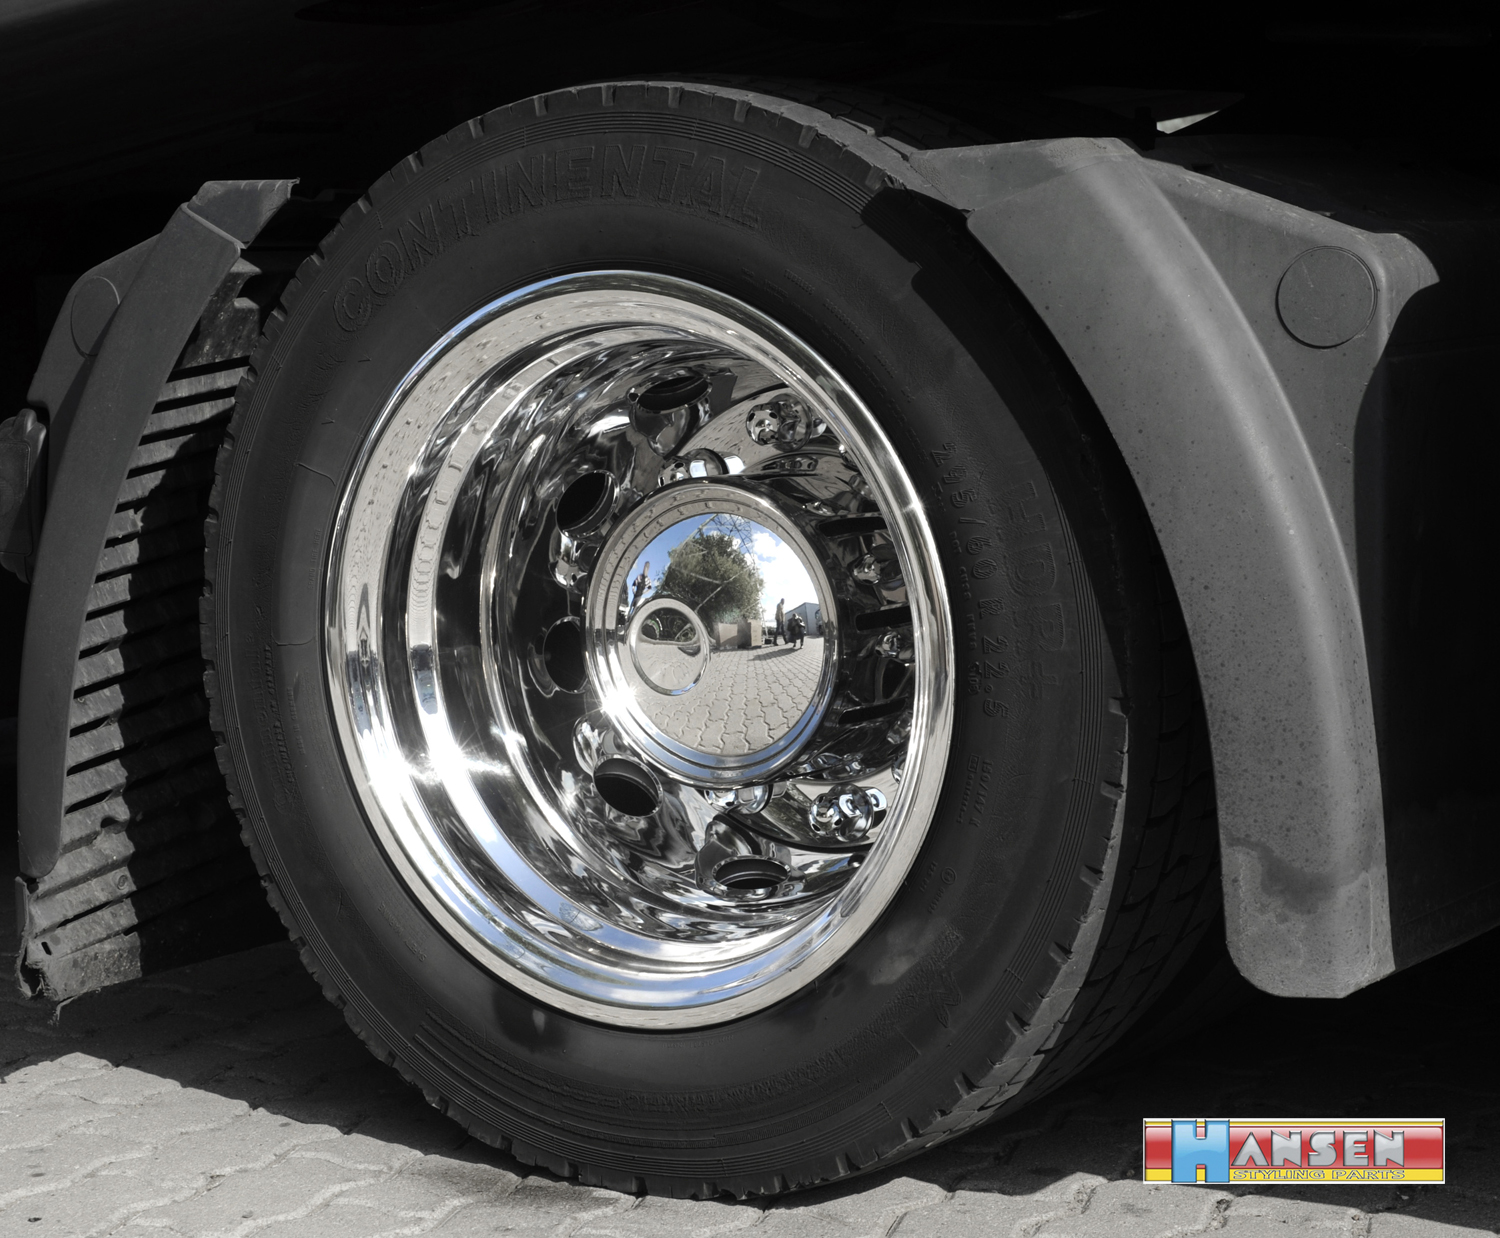 1x Set Truck Complete 2 Rims Stainless Steel Trim Lining 9x22 5 Rear